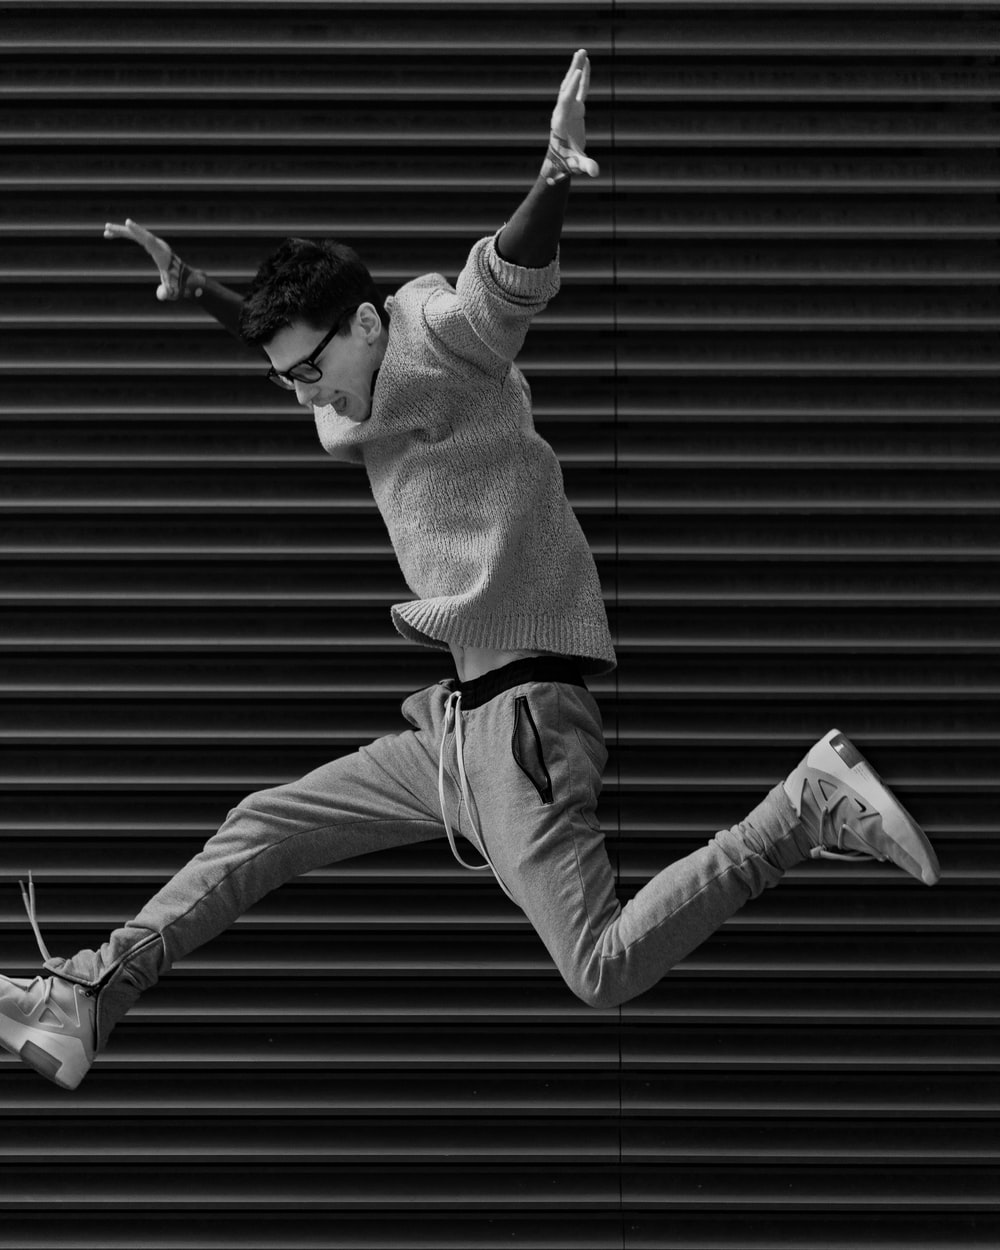 grayscale photography of person jumping